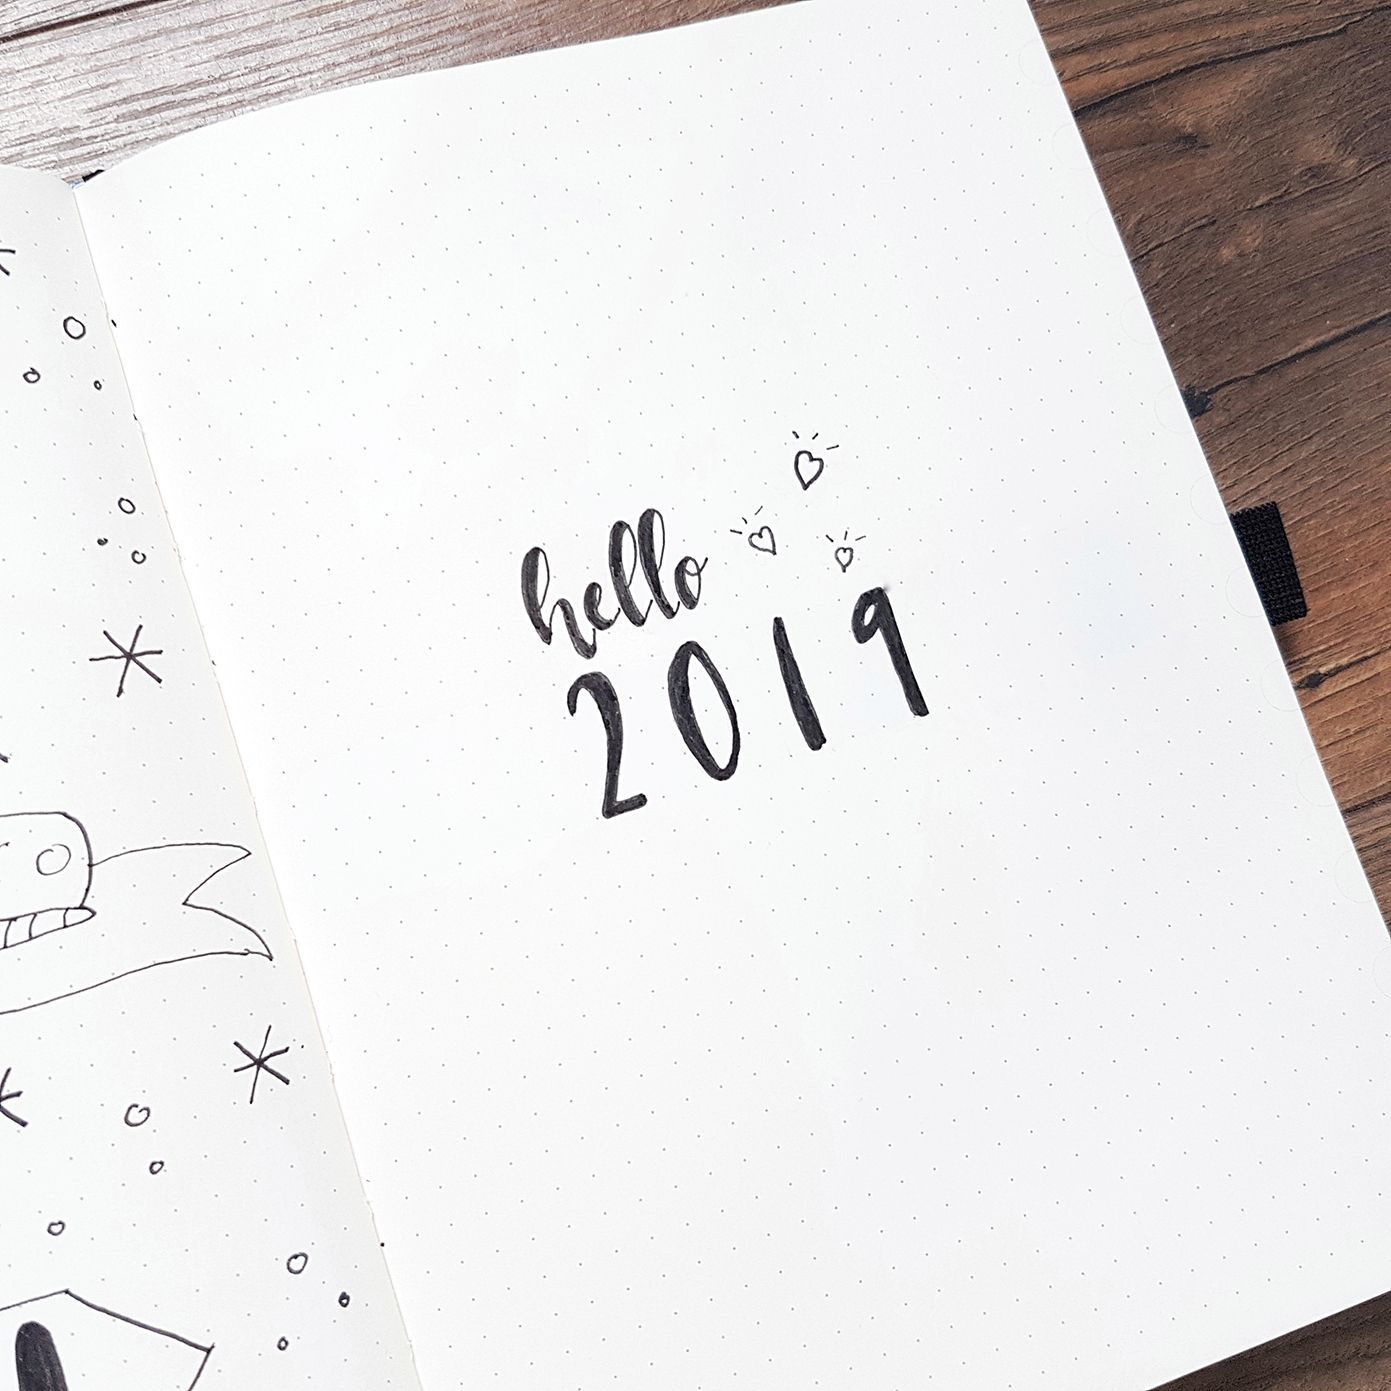 Bullet Journal Set Up 2019: 9 Steps To Help You Achieve Your Goals In 2019